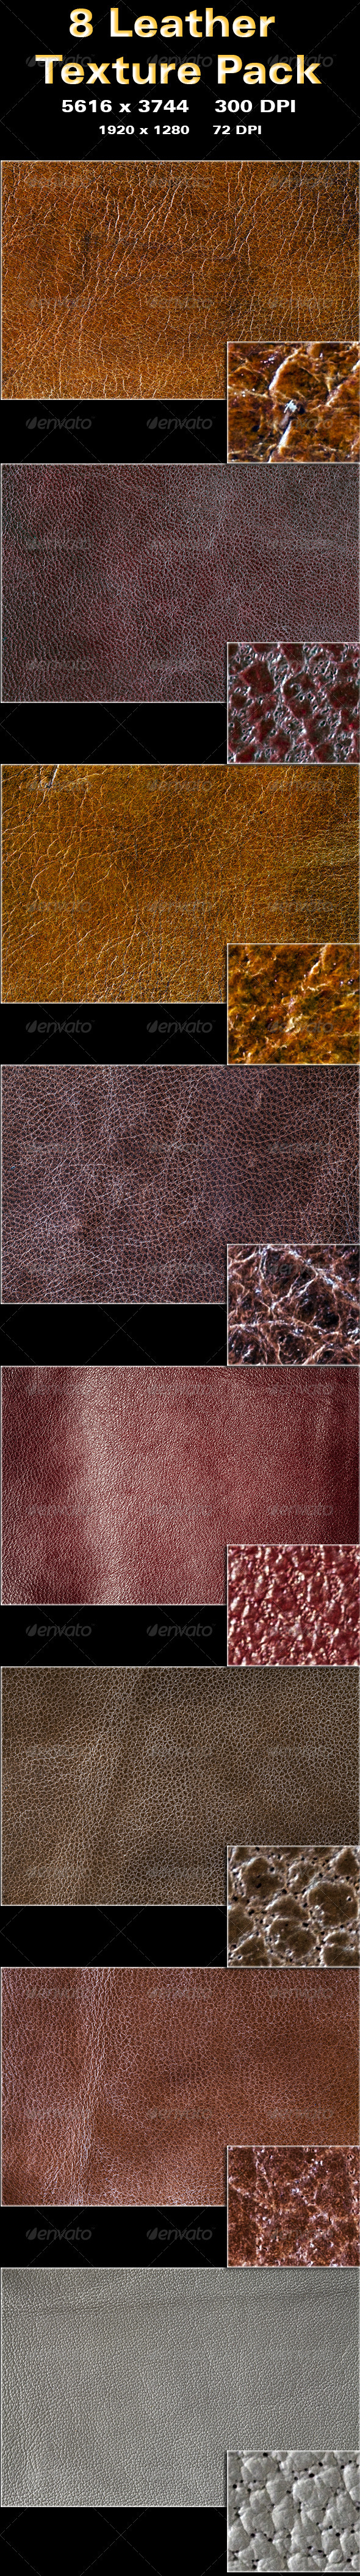 GraphicRiver 8 Leather Texture Pack 3391875